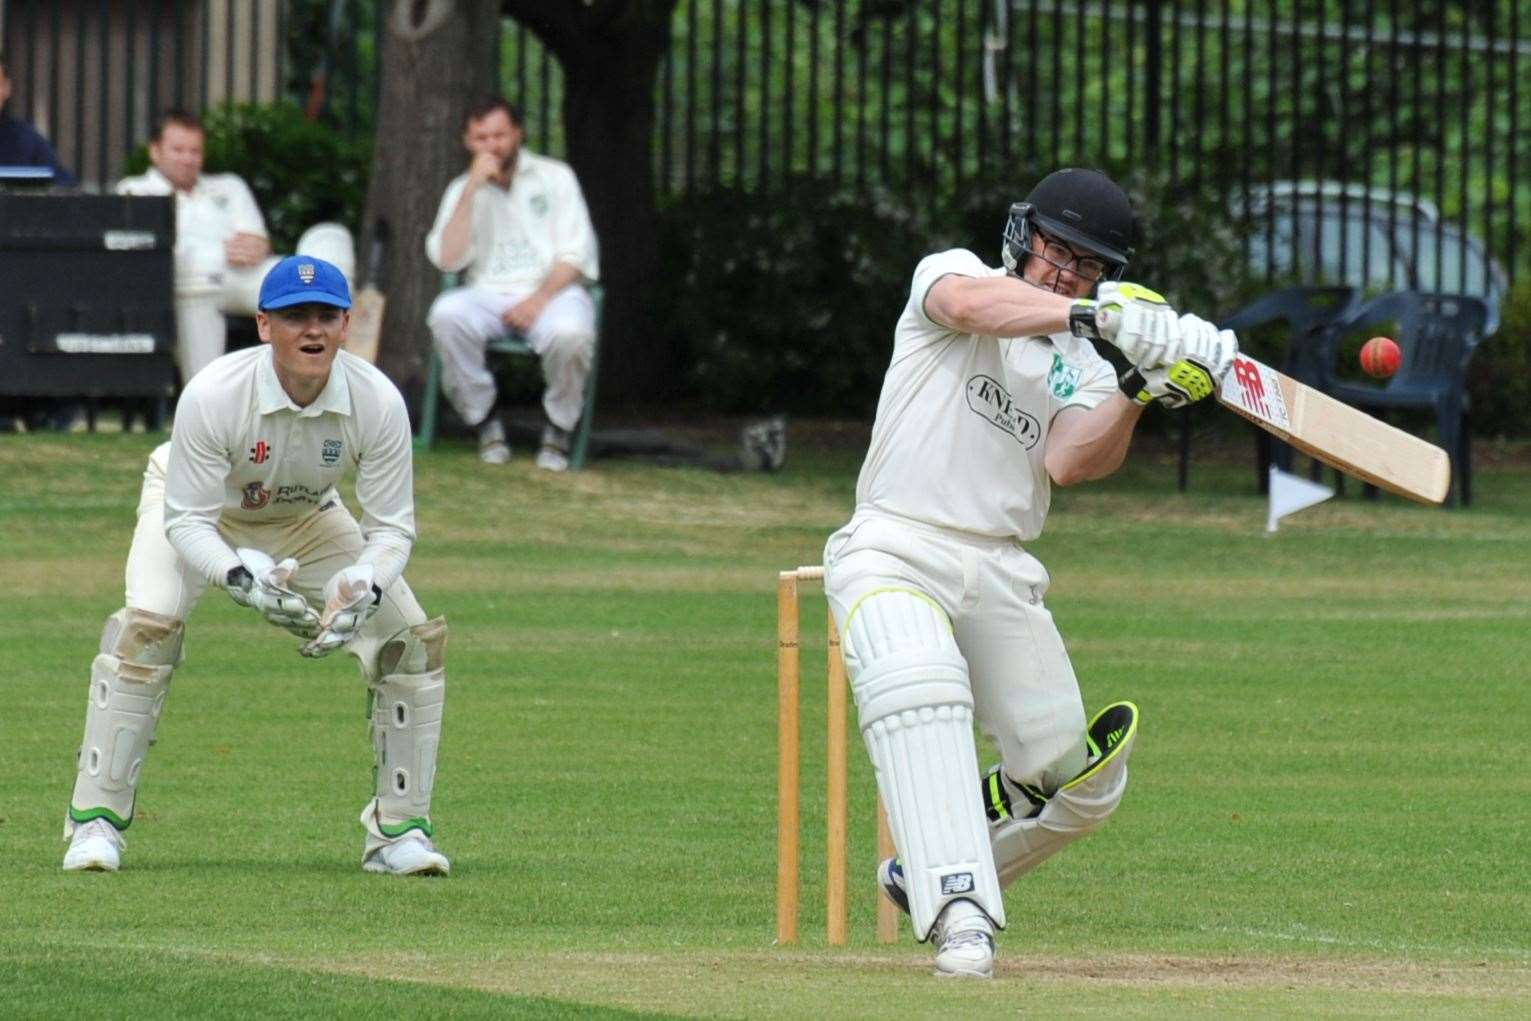 Uffington went top of Division Two of the Rutland League after victory over Bourne on Sunday. Photo: Alan Walters (11245417)